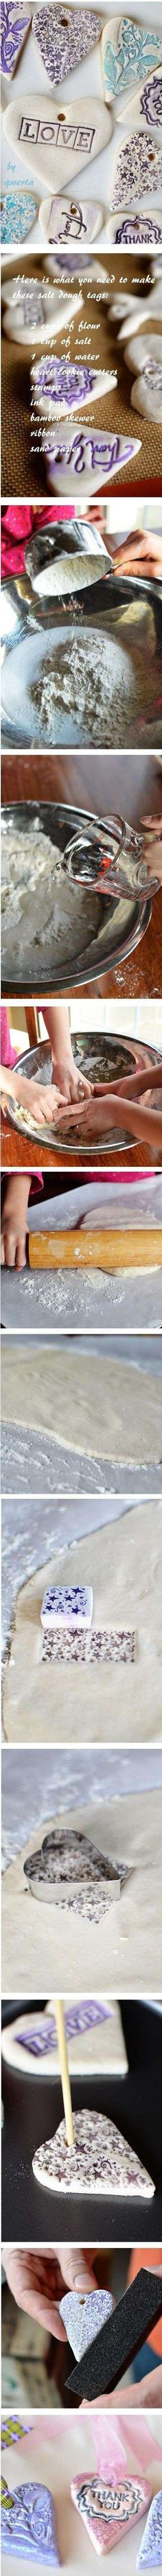 Rolling pin ornament - Pressed Flower Ornaments Dough Is Made From 1 Cup Baking Soda 1 2 Cup Corn Starch 3 4 Cup Of Warm Water Roll Flat Cut Out Circles Punch Hang